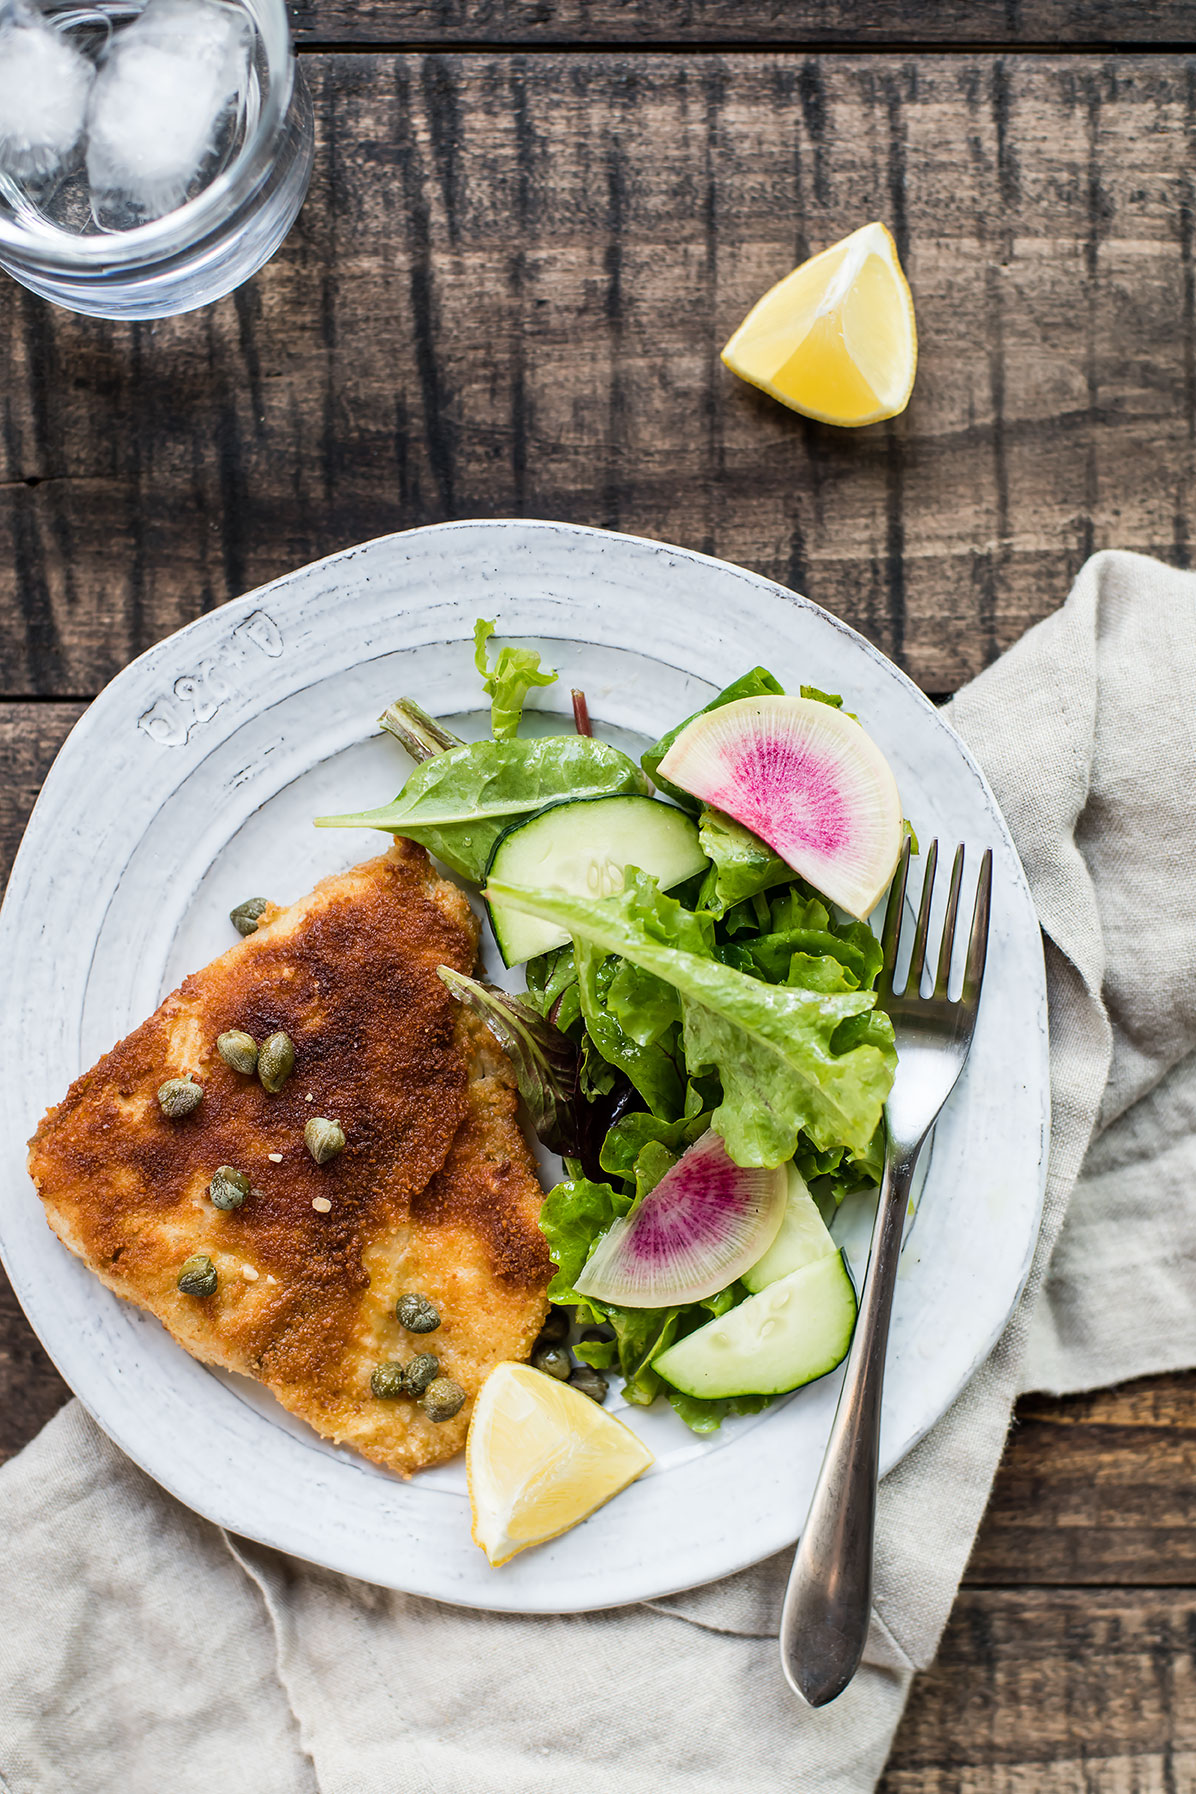 Fried Fish with Lemon-Butter Sauce